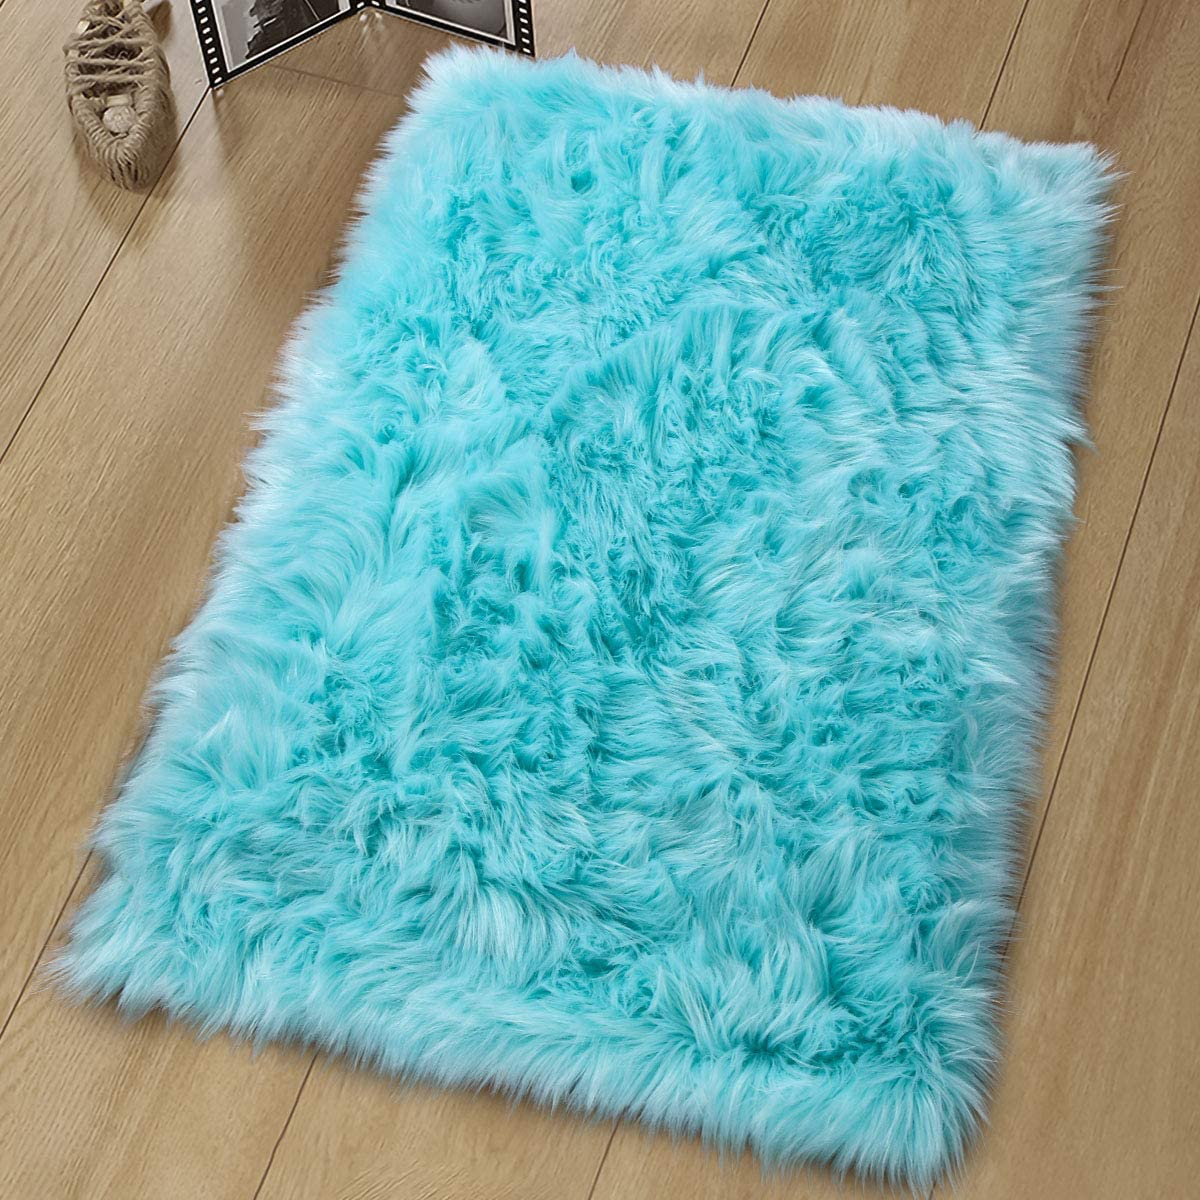 Noahas Luxury Fluffy Rugs Bedroom Furry Carpet Bedside Faux Fur Sheepskin Area Rugs Children Play Princess Room Decor Rug, 2ft x 3ft, Light Blue